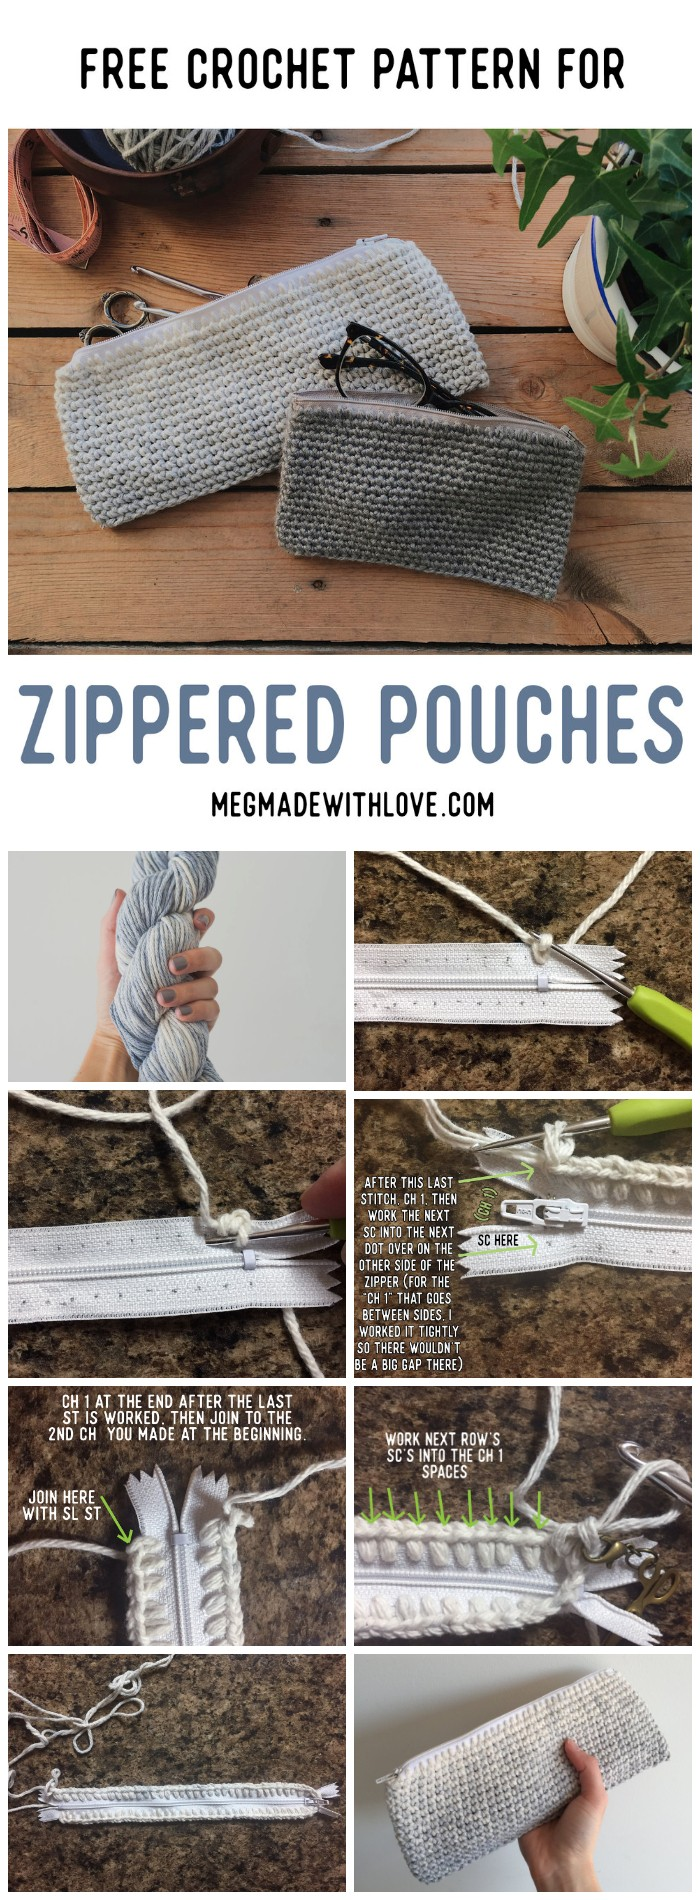 Free Crochet Pattern and Tutorial for Zippered Pouches